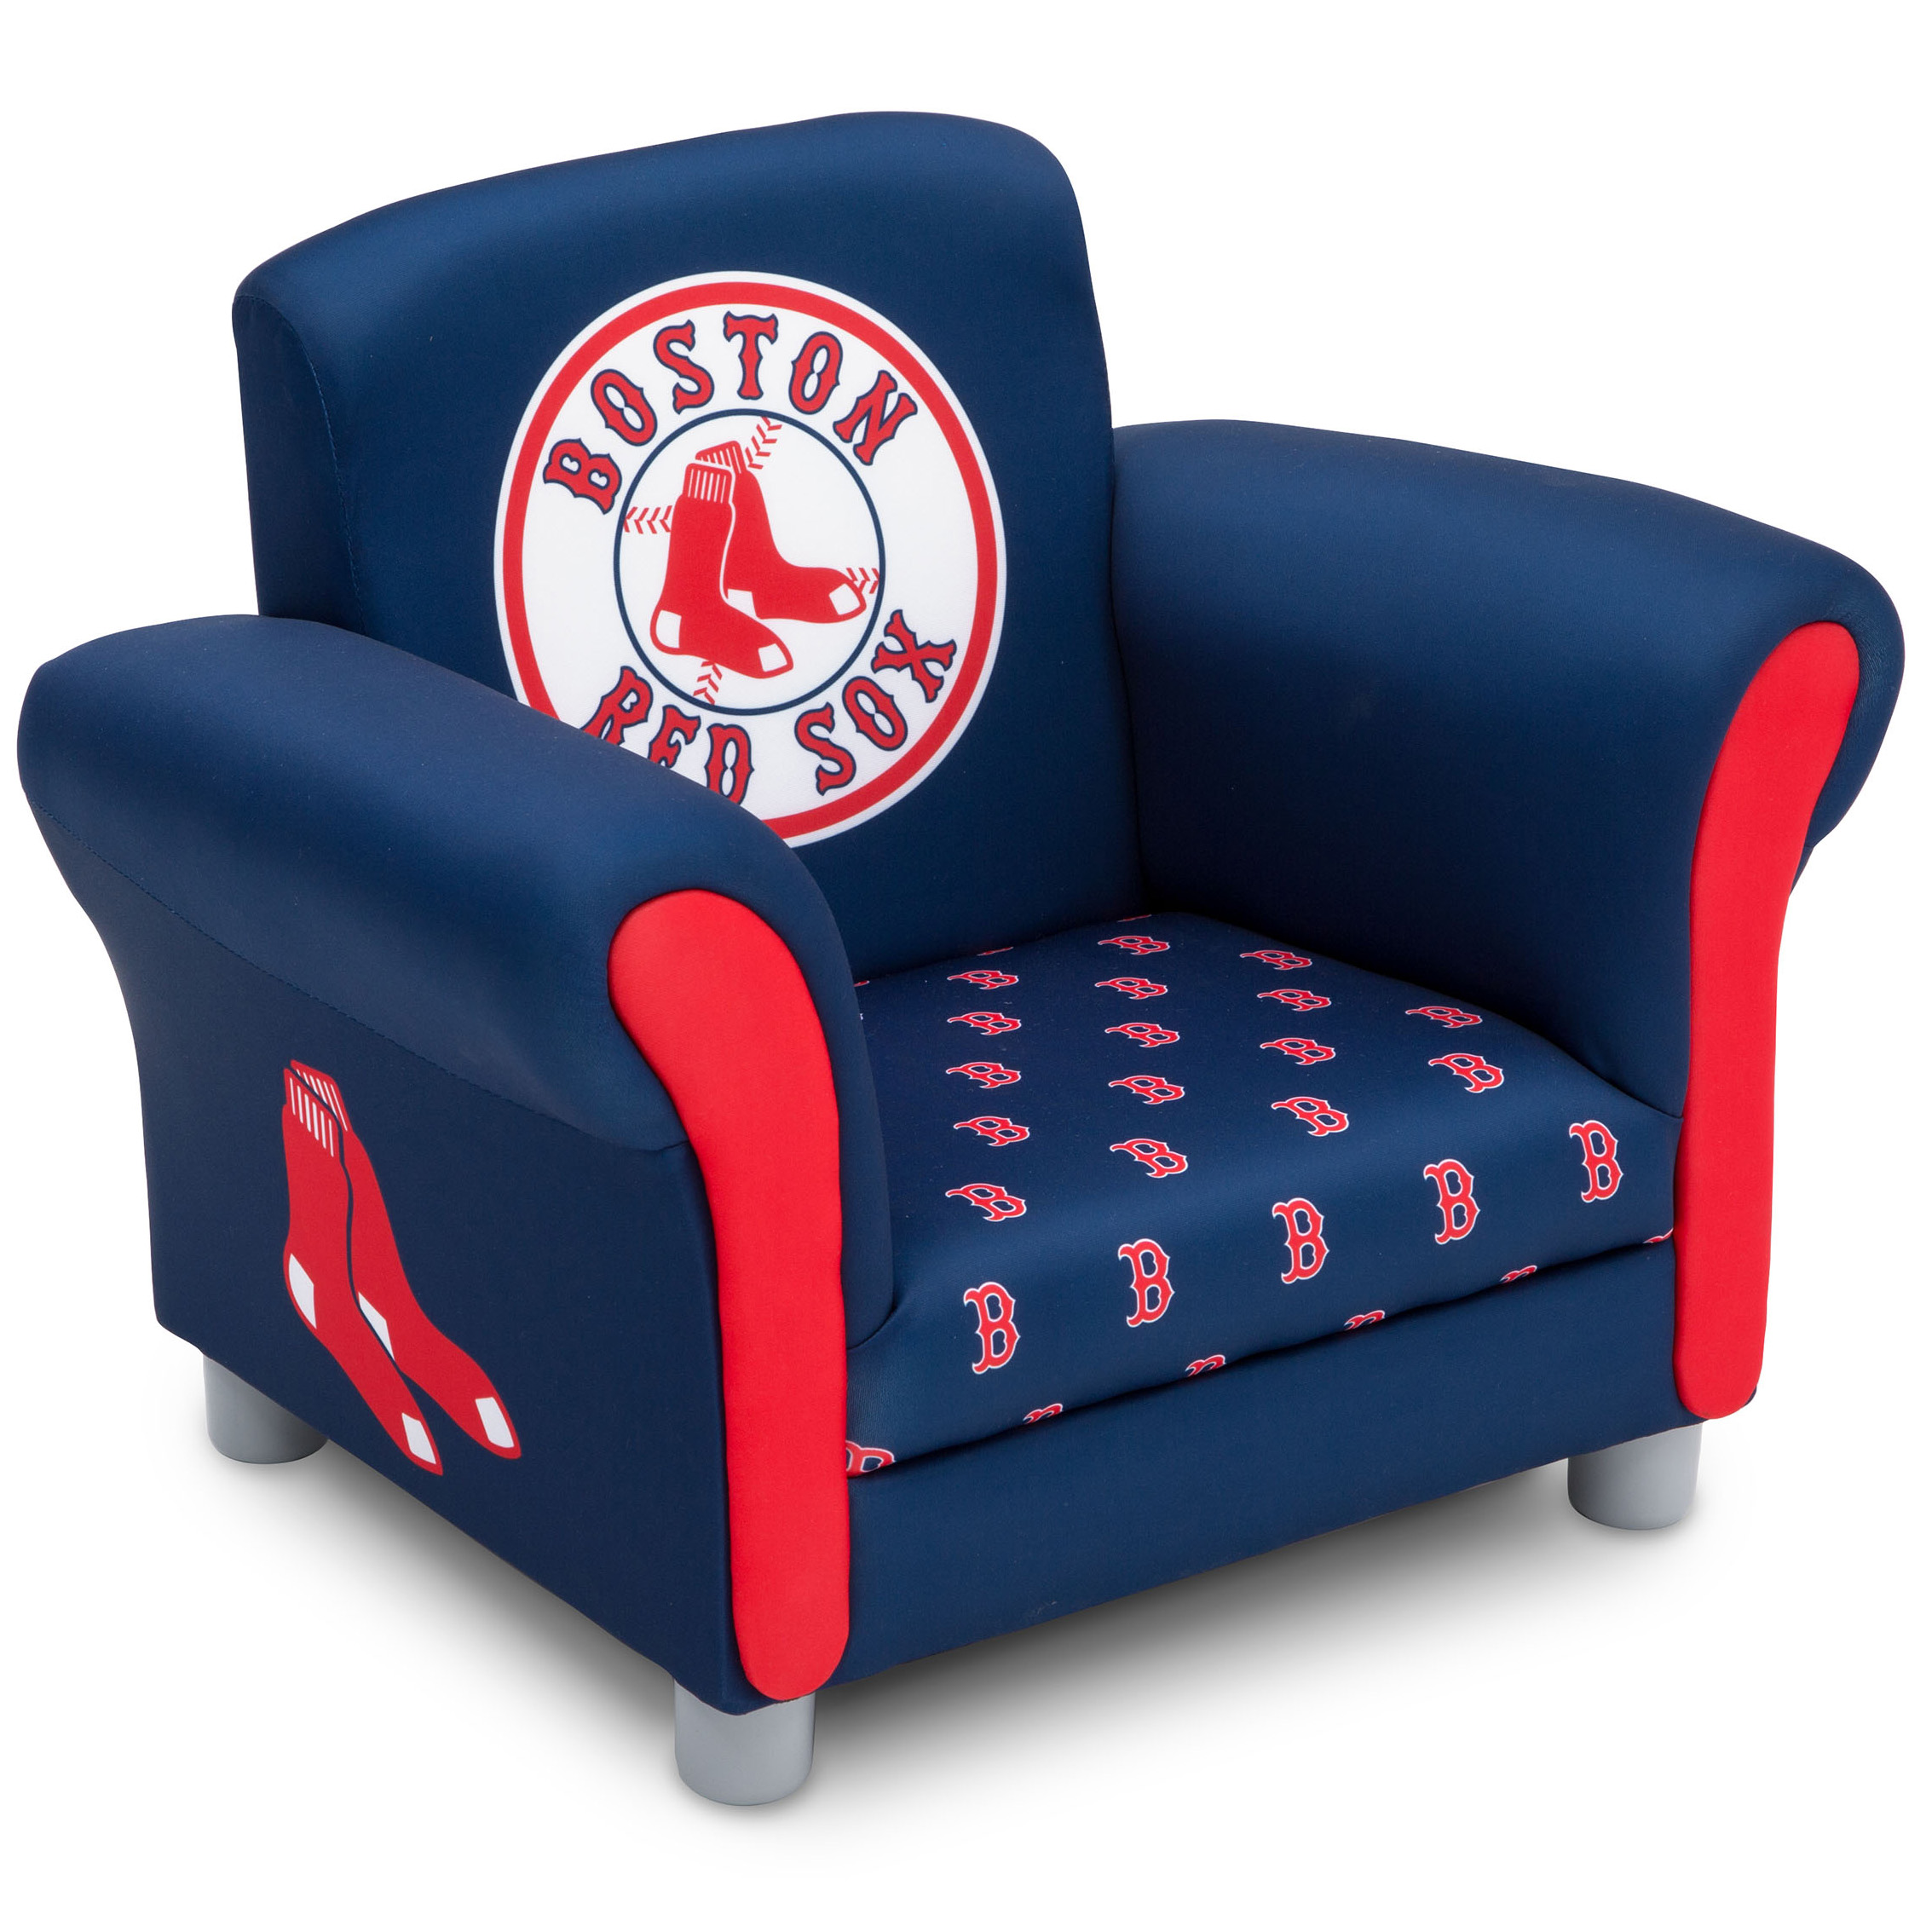 MLB Boston Red Sox Kids Upholstered Chair by Delta Children